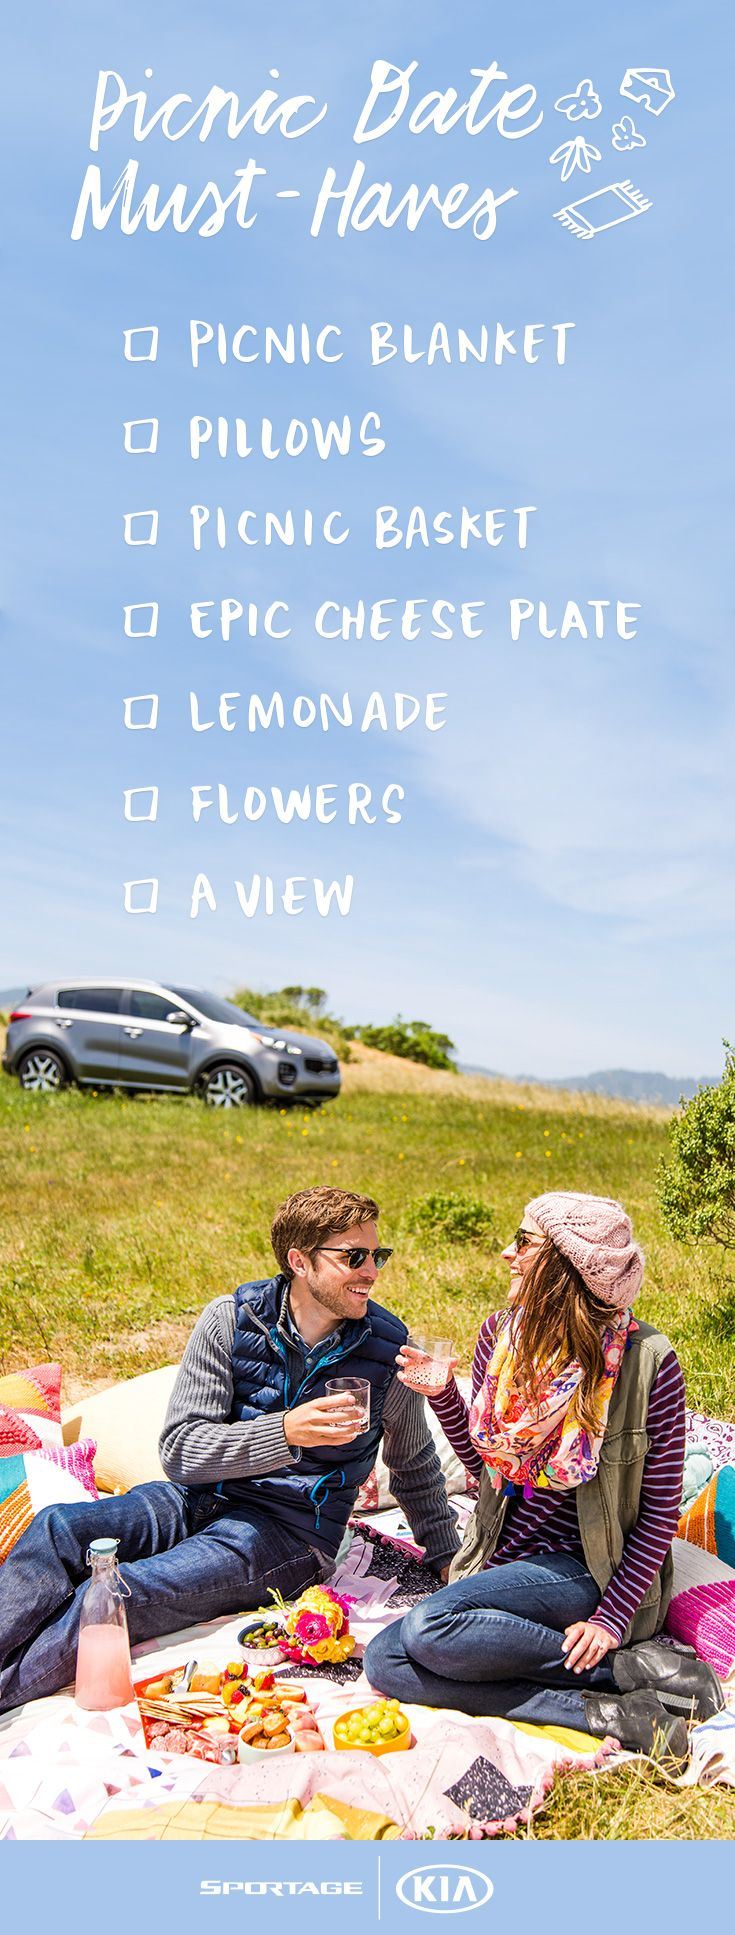 A picnic date is the perfect afternoon activity for you and your boo! Make sure to bring along the following essentials: a picnic blanket, pillows, a picnic basket, an epic cheese plate, lemonade and flowers. Oh, and be sure to scout out a picturesque location with a view beforehand! #partner